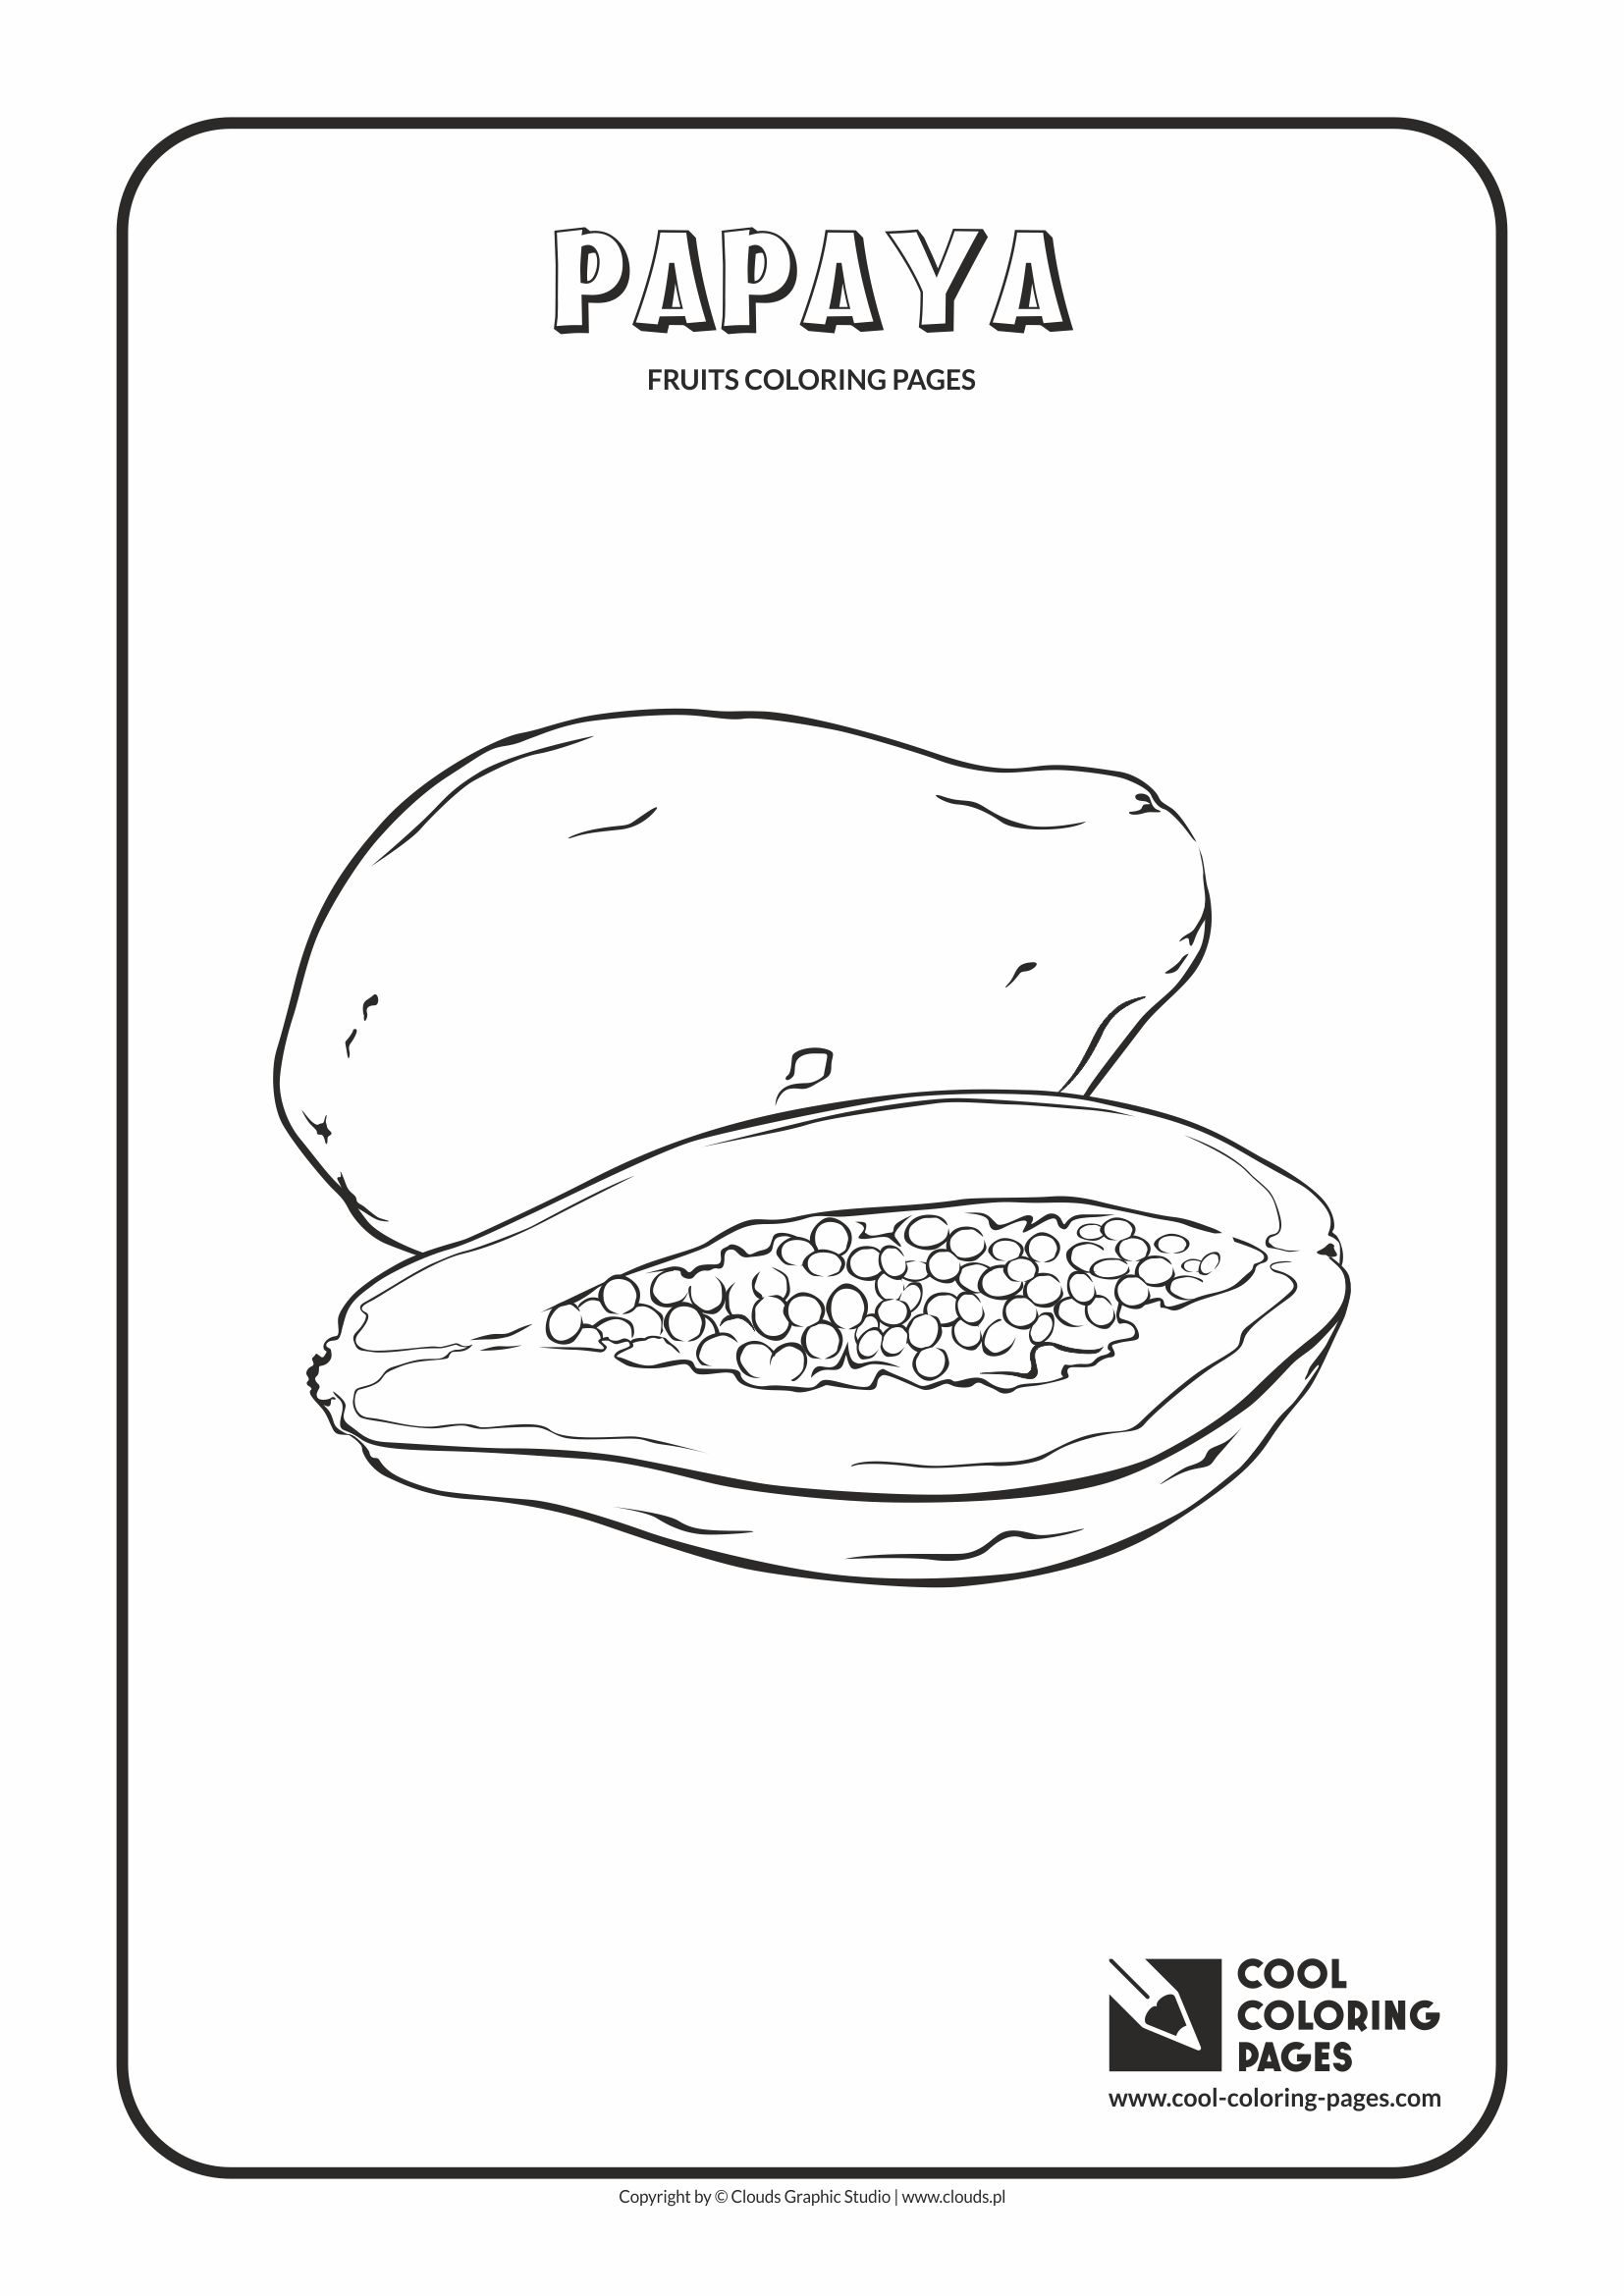 Cool Coloring Pages - Plants / Papaya / Coloring page with papaya